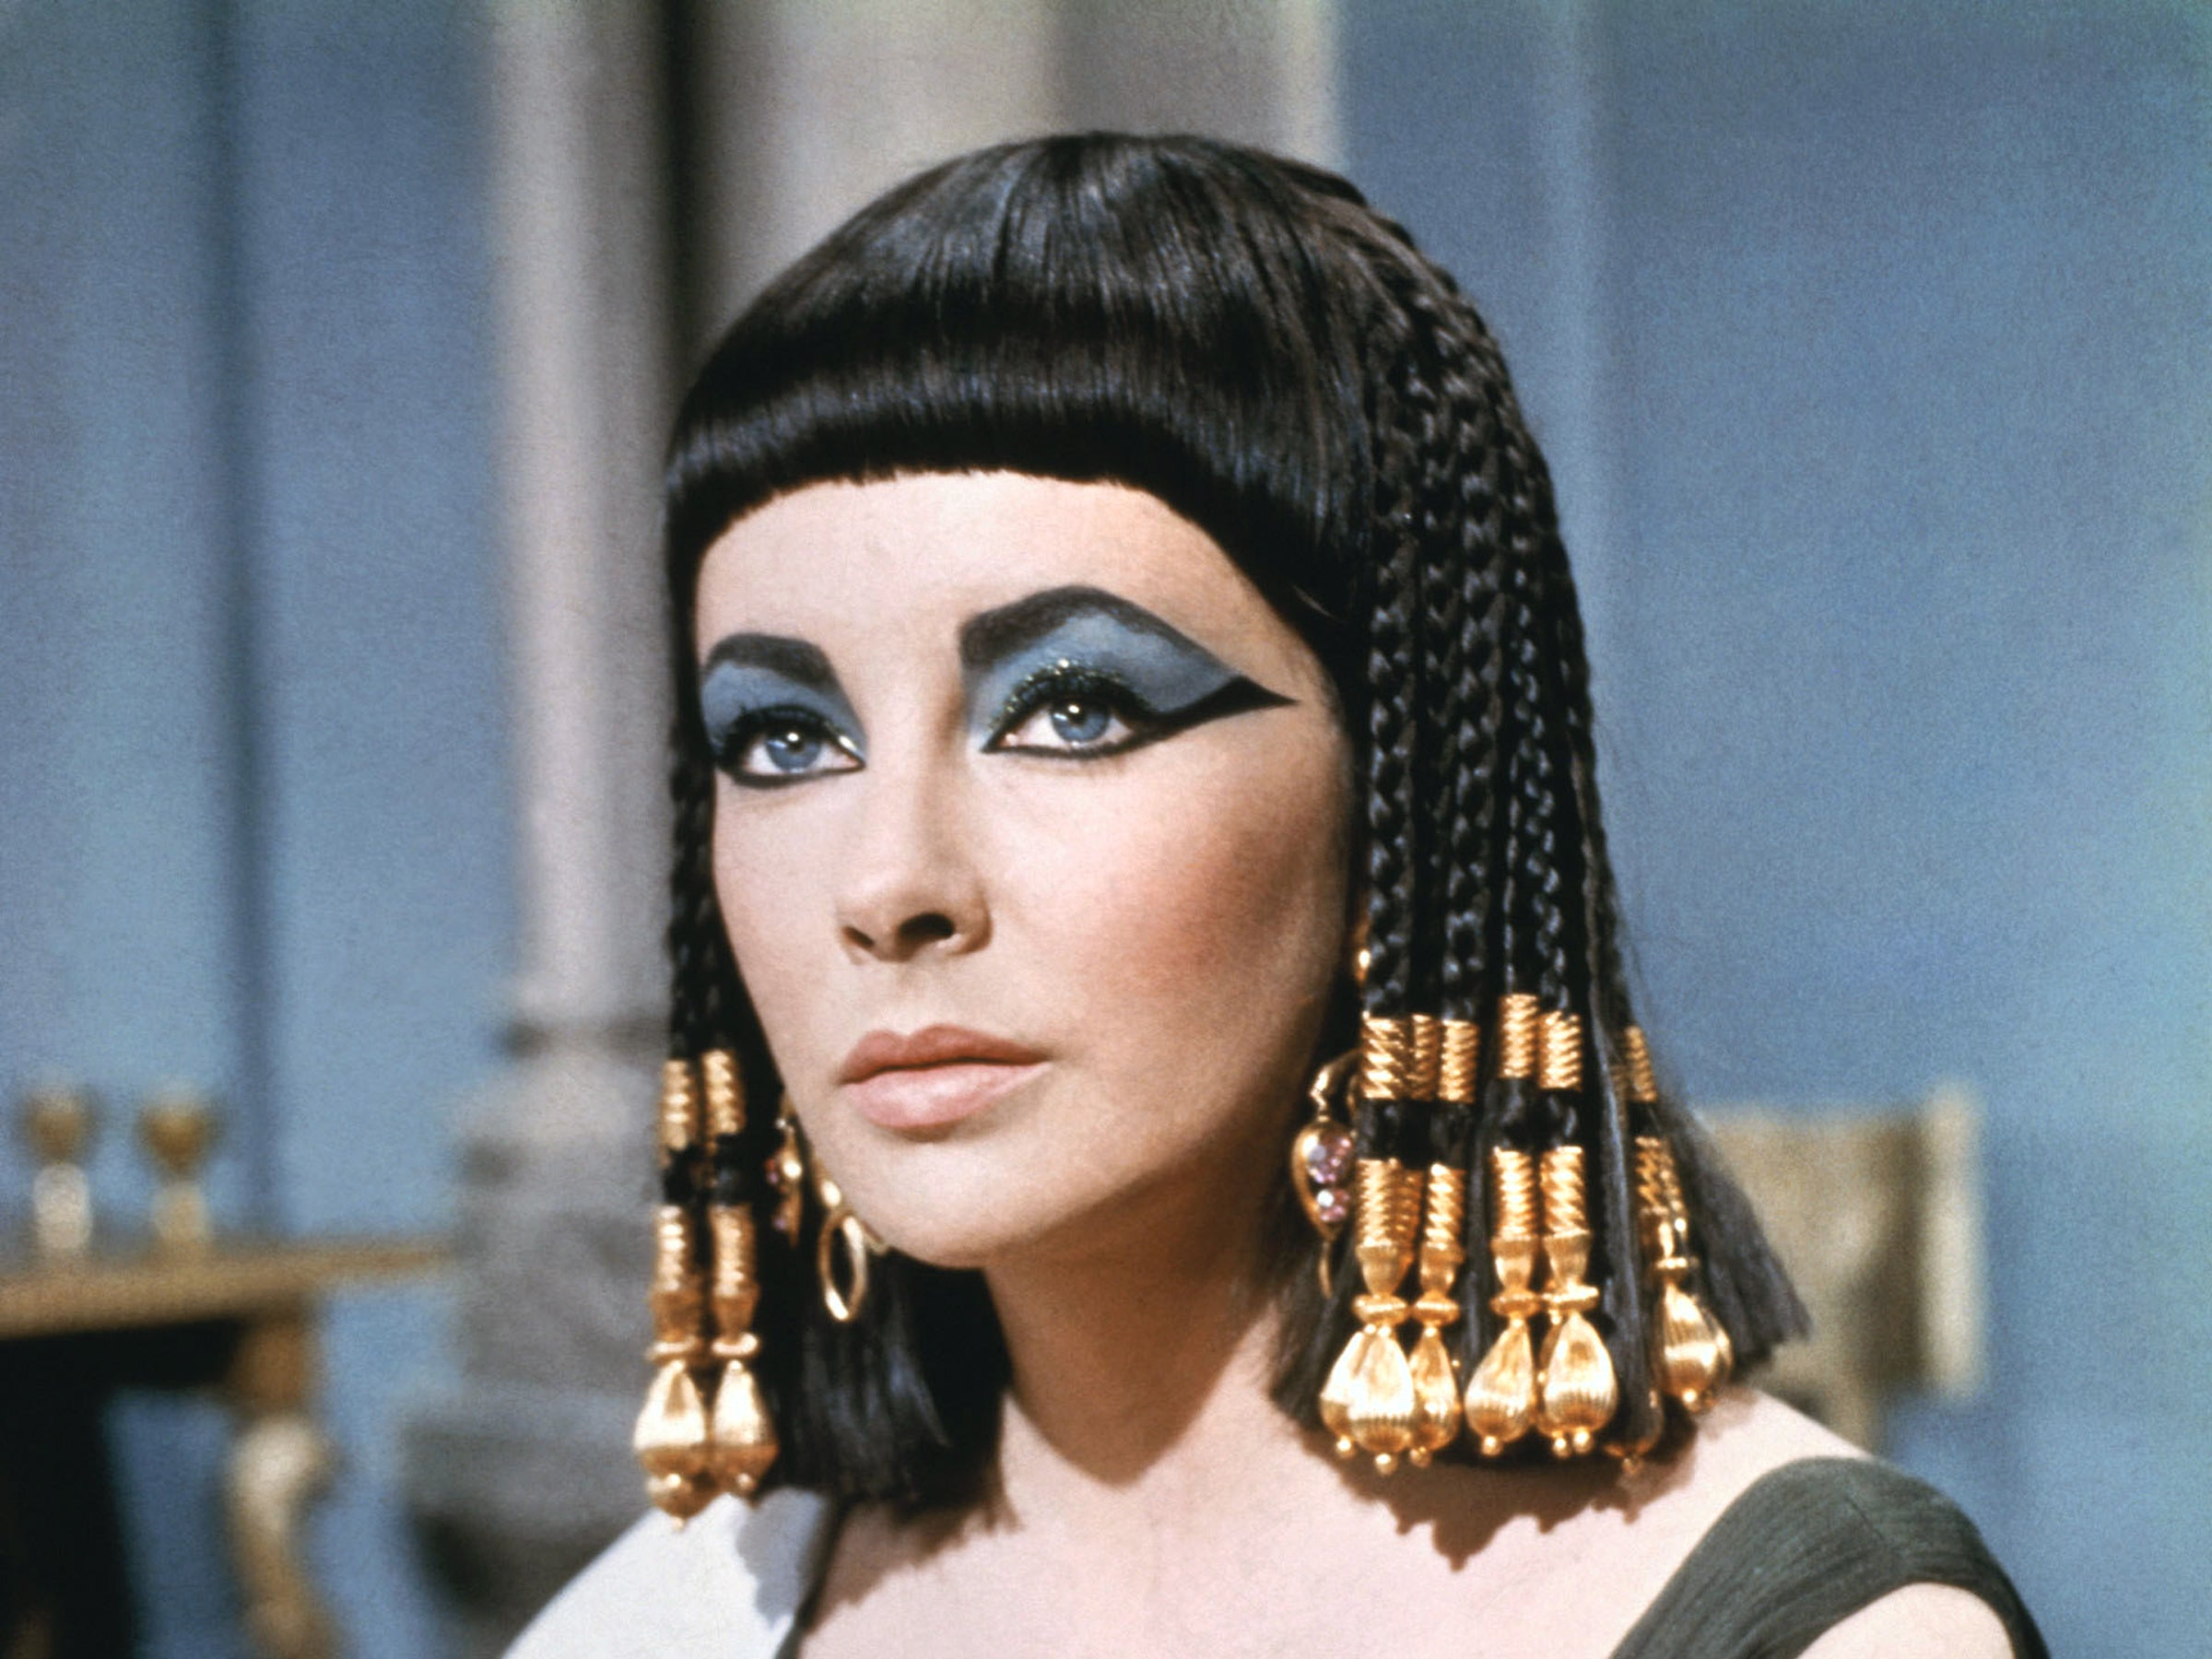 Cleopatra should be played by a black actor – but not just because it might be more historically accurate